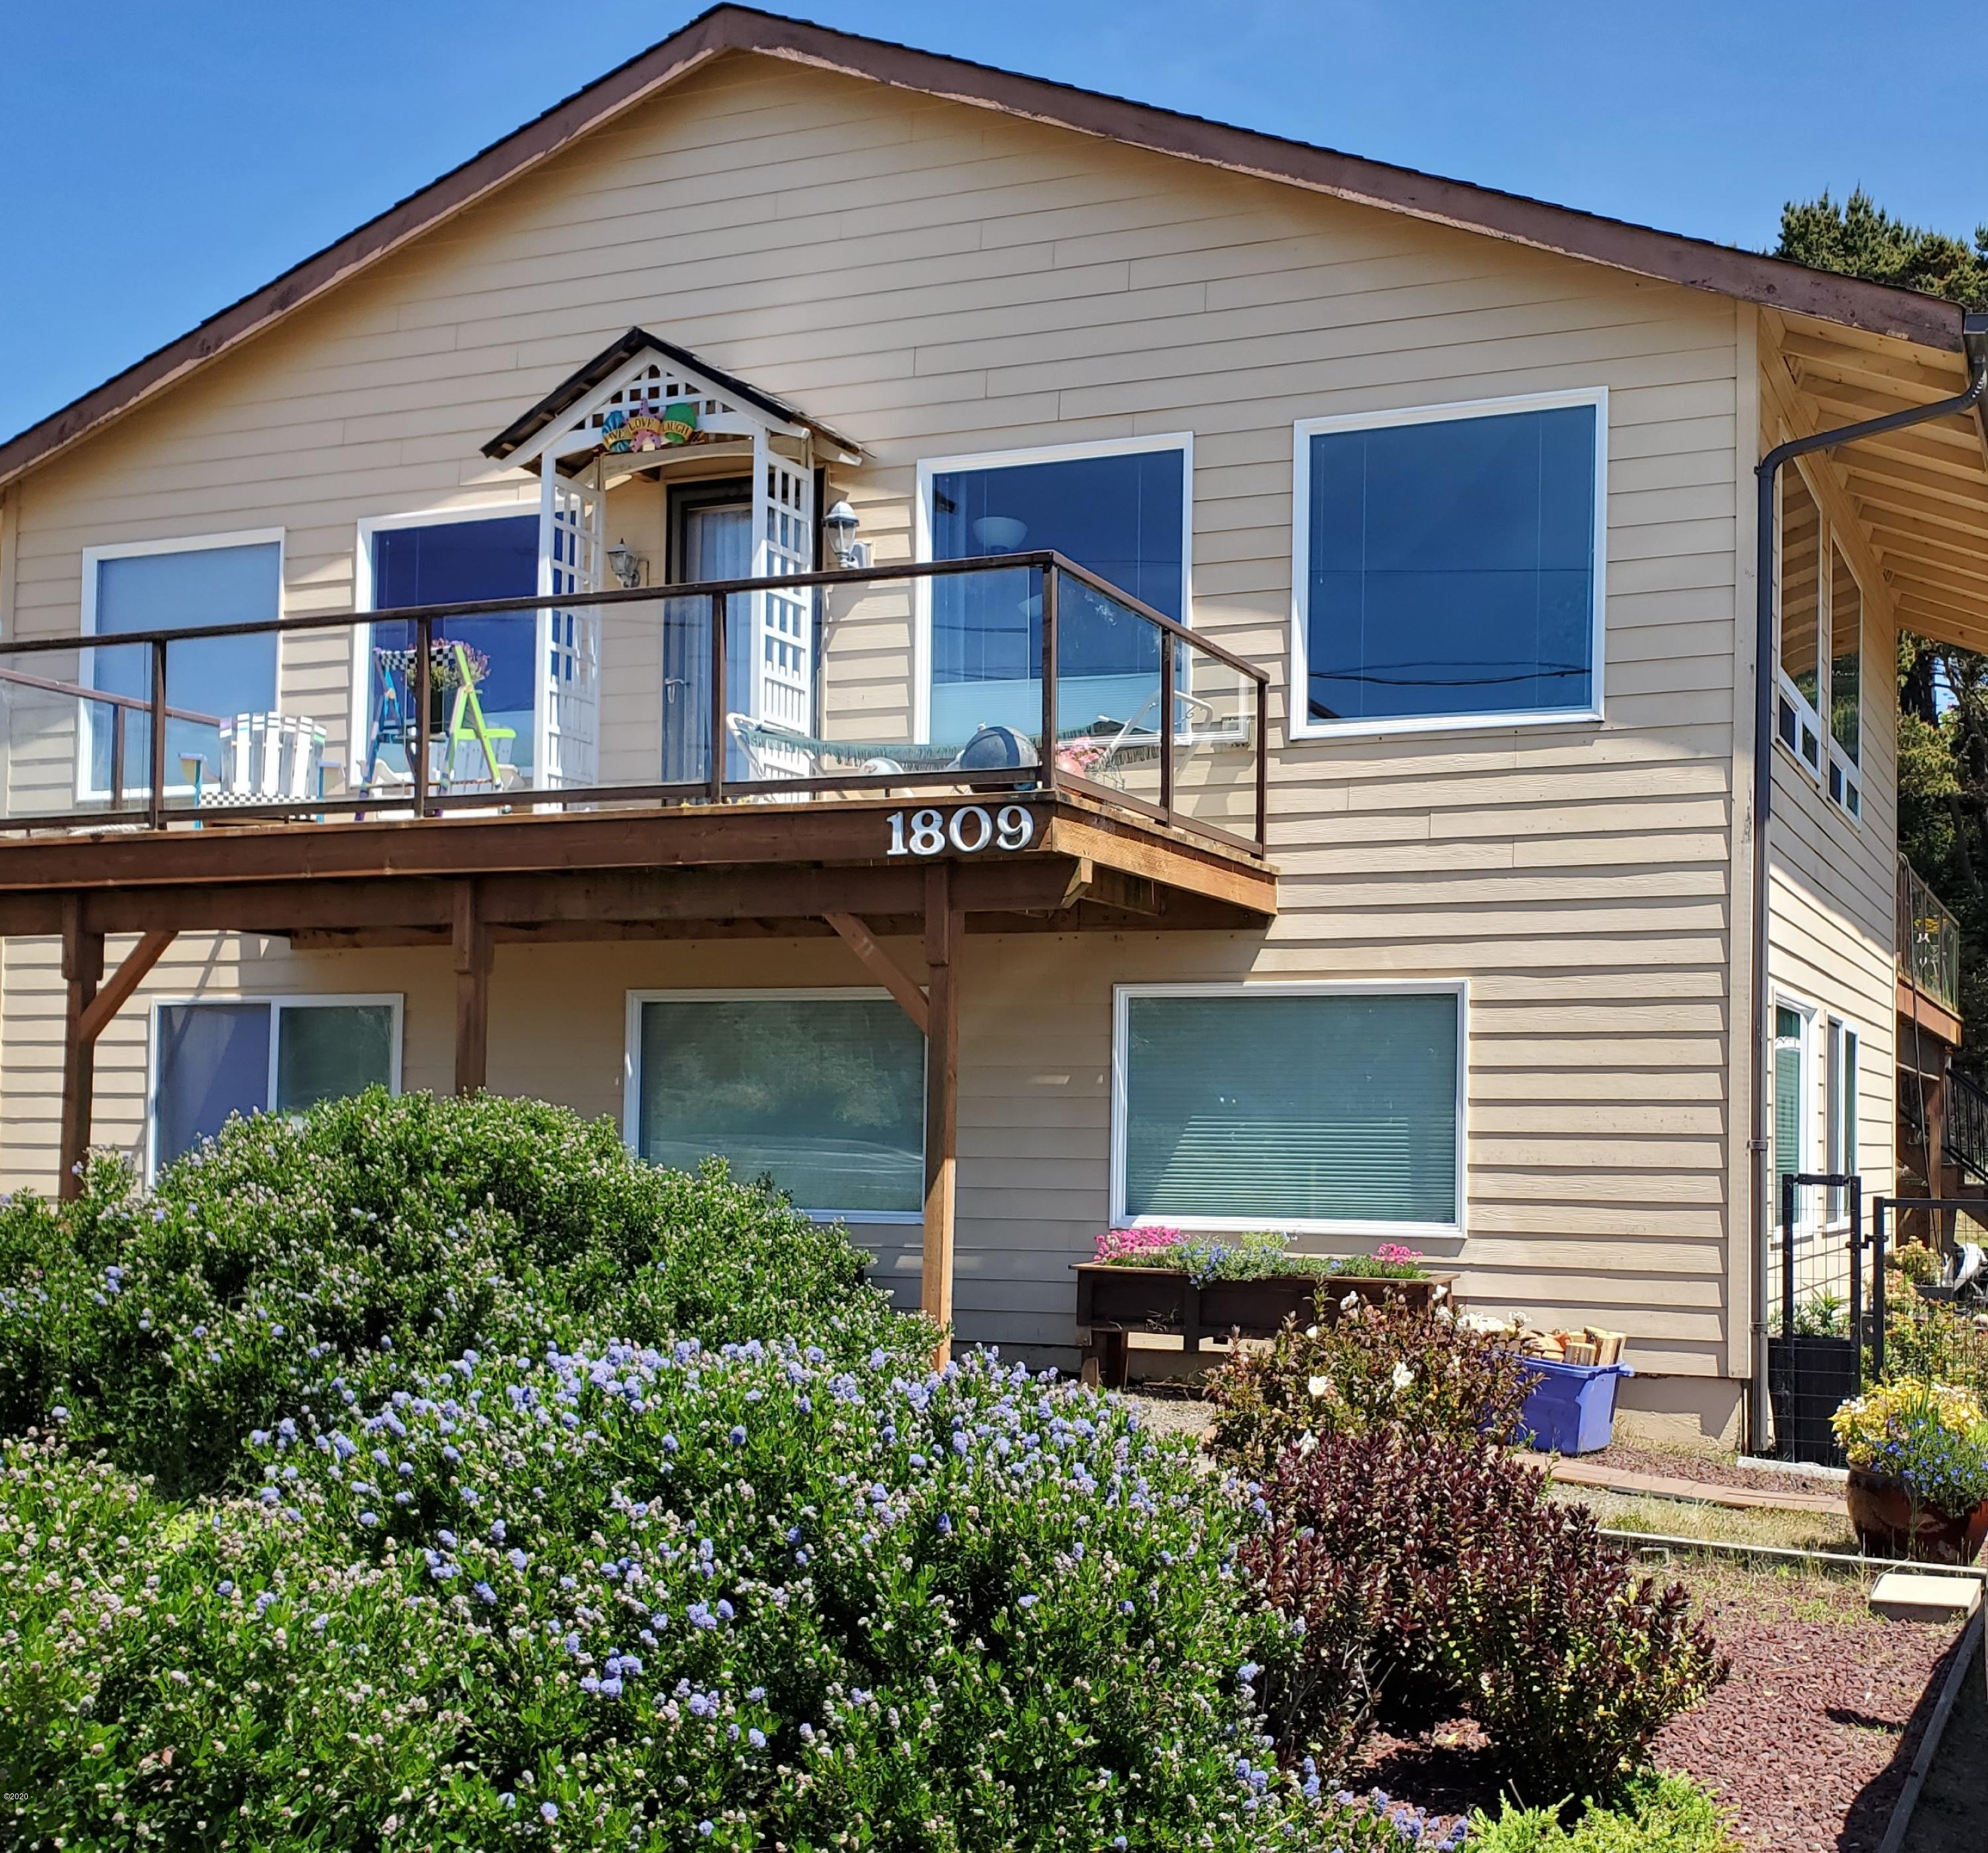 1809 NW Bayshore Dr, Waldport, OR 97394